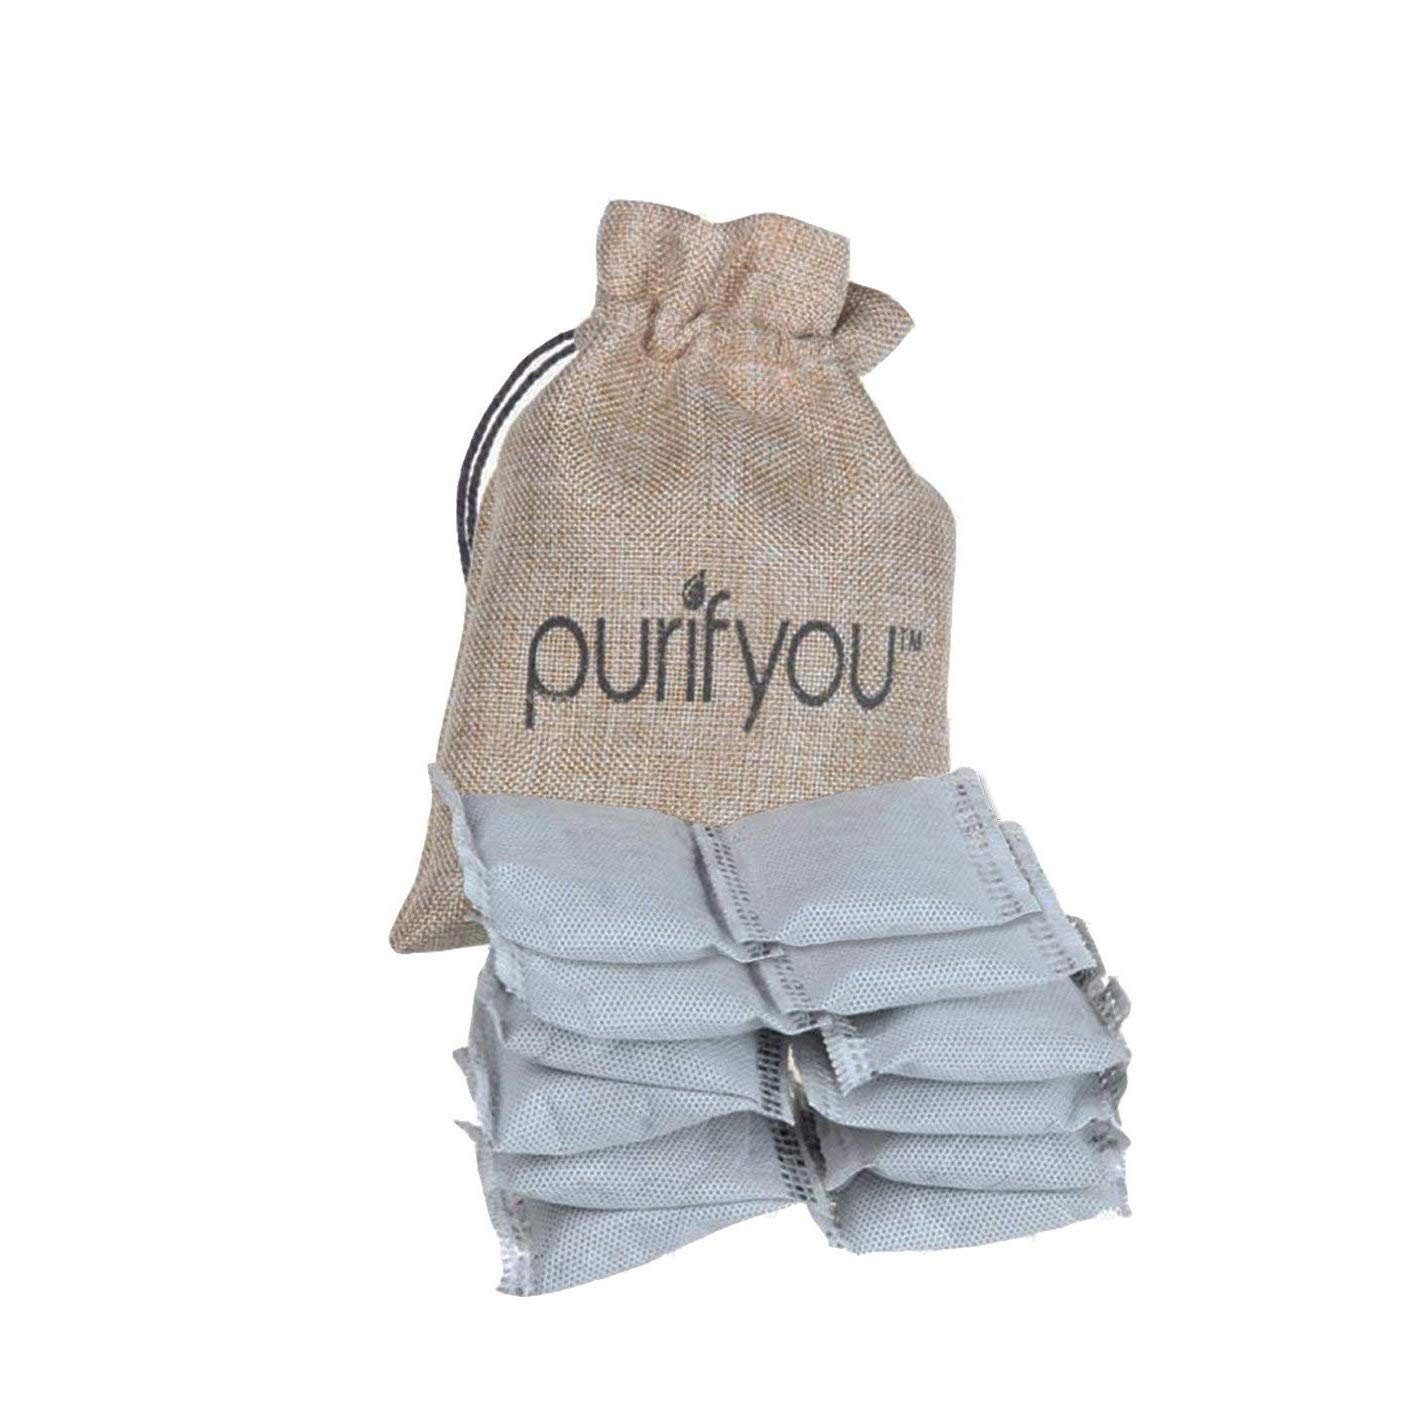 purifyou 100% All-Natural Activated Bamboo Charcoal Air Purifying Bag Diaper Pail Deodorizer Bags | Absorber For Diaper…